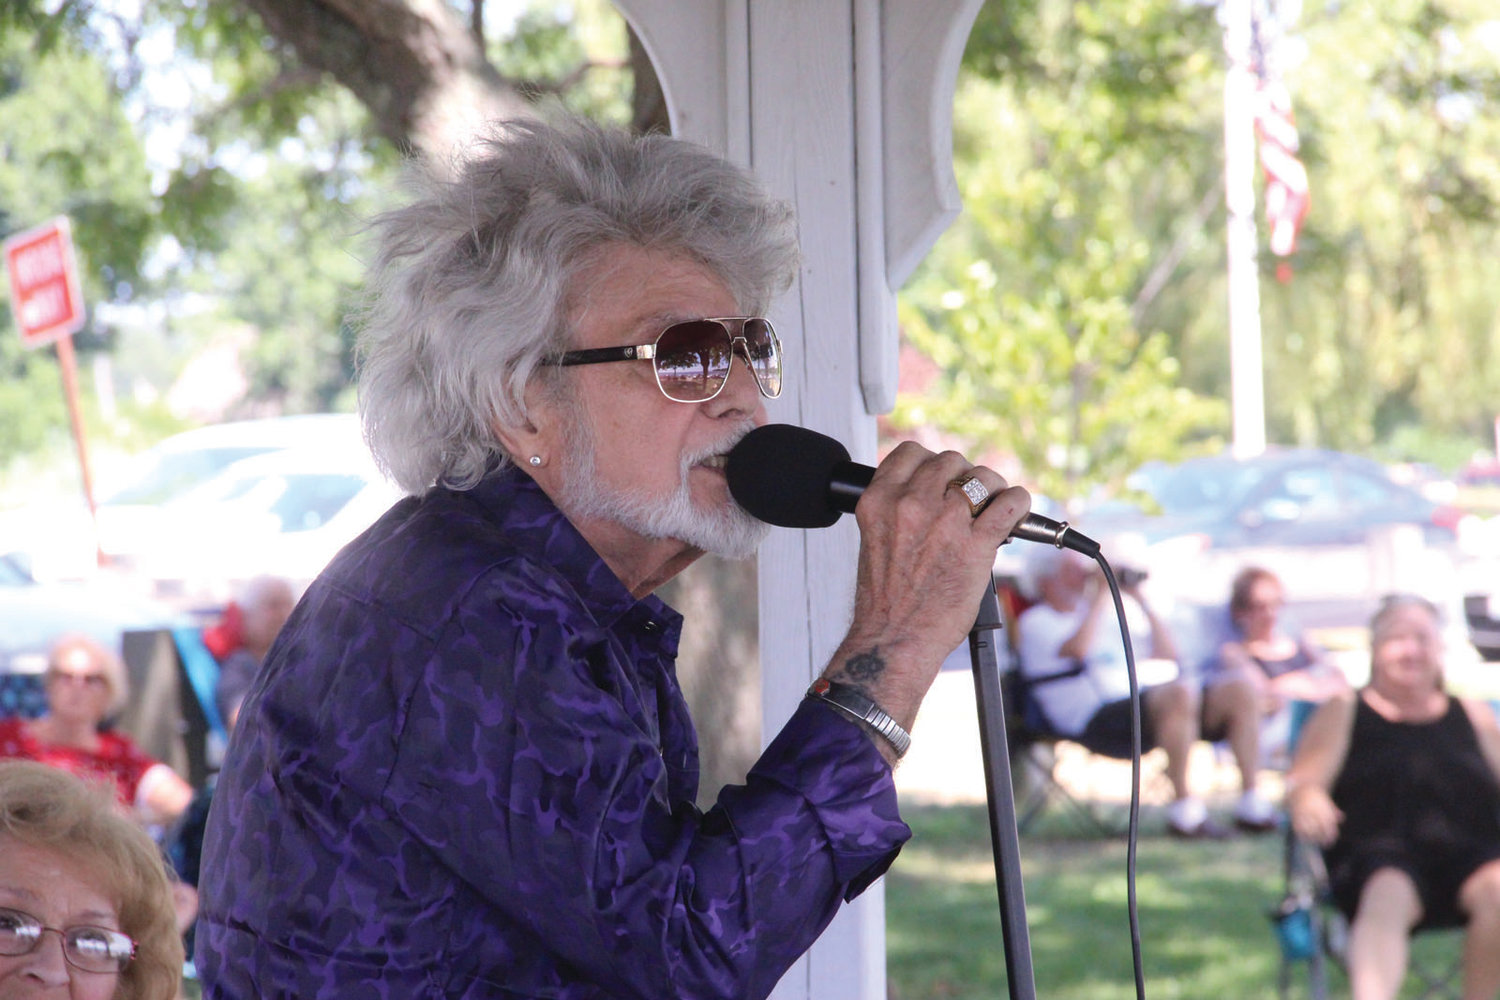 TUNES TO KEEP COOL: Frank Azevedo, known to his fans as Vedo, is a Sunday regular at the Oakland Beach gazebo. He has a loyal following that hum or even dance as he signs popular songs from the 60s and 70s.